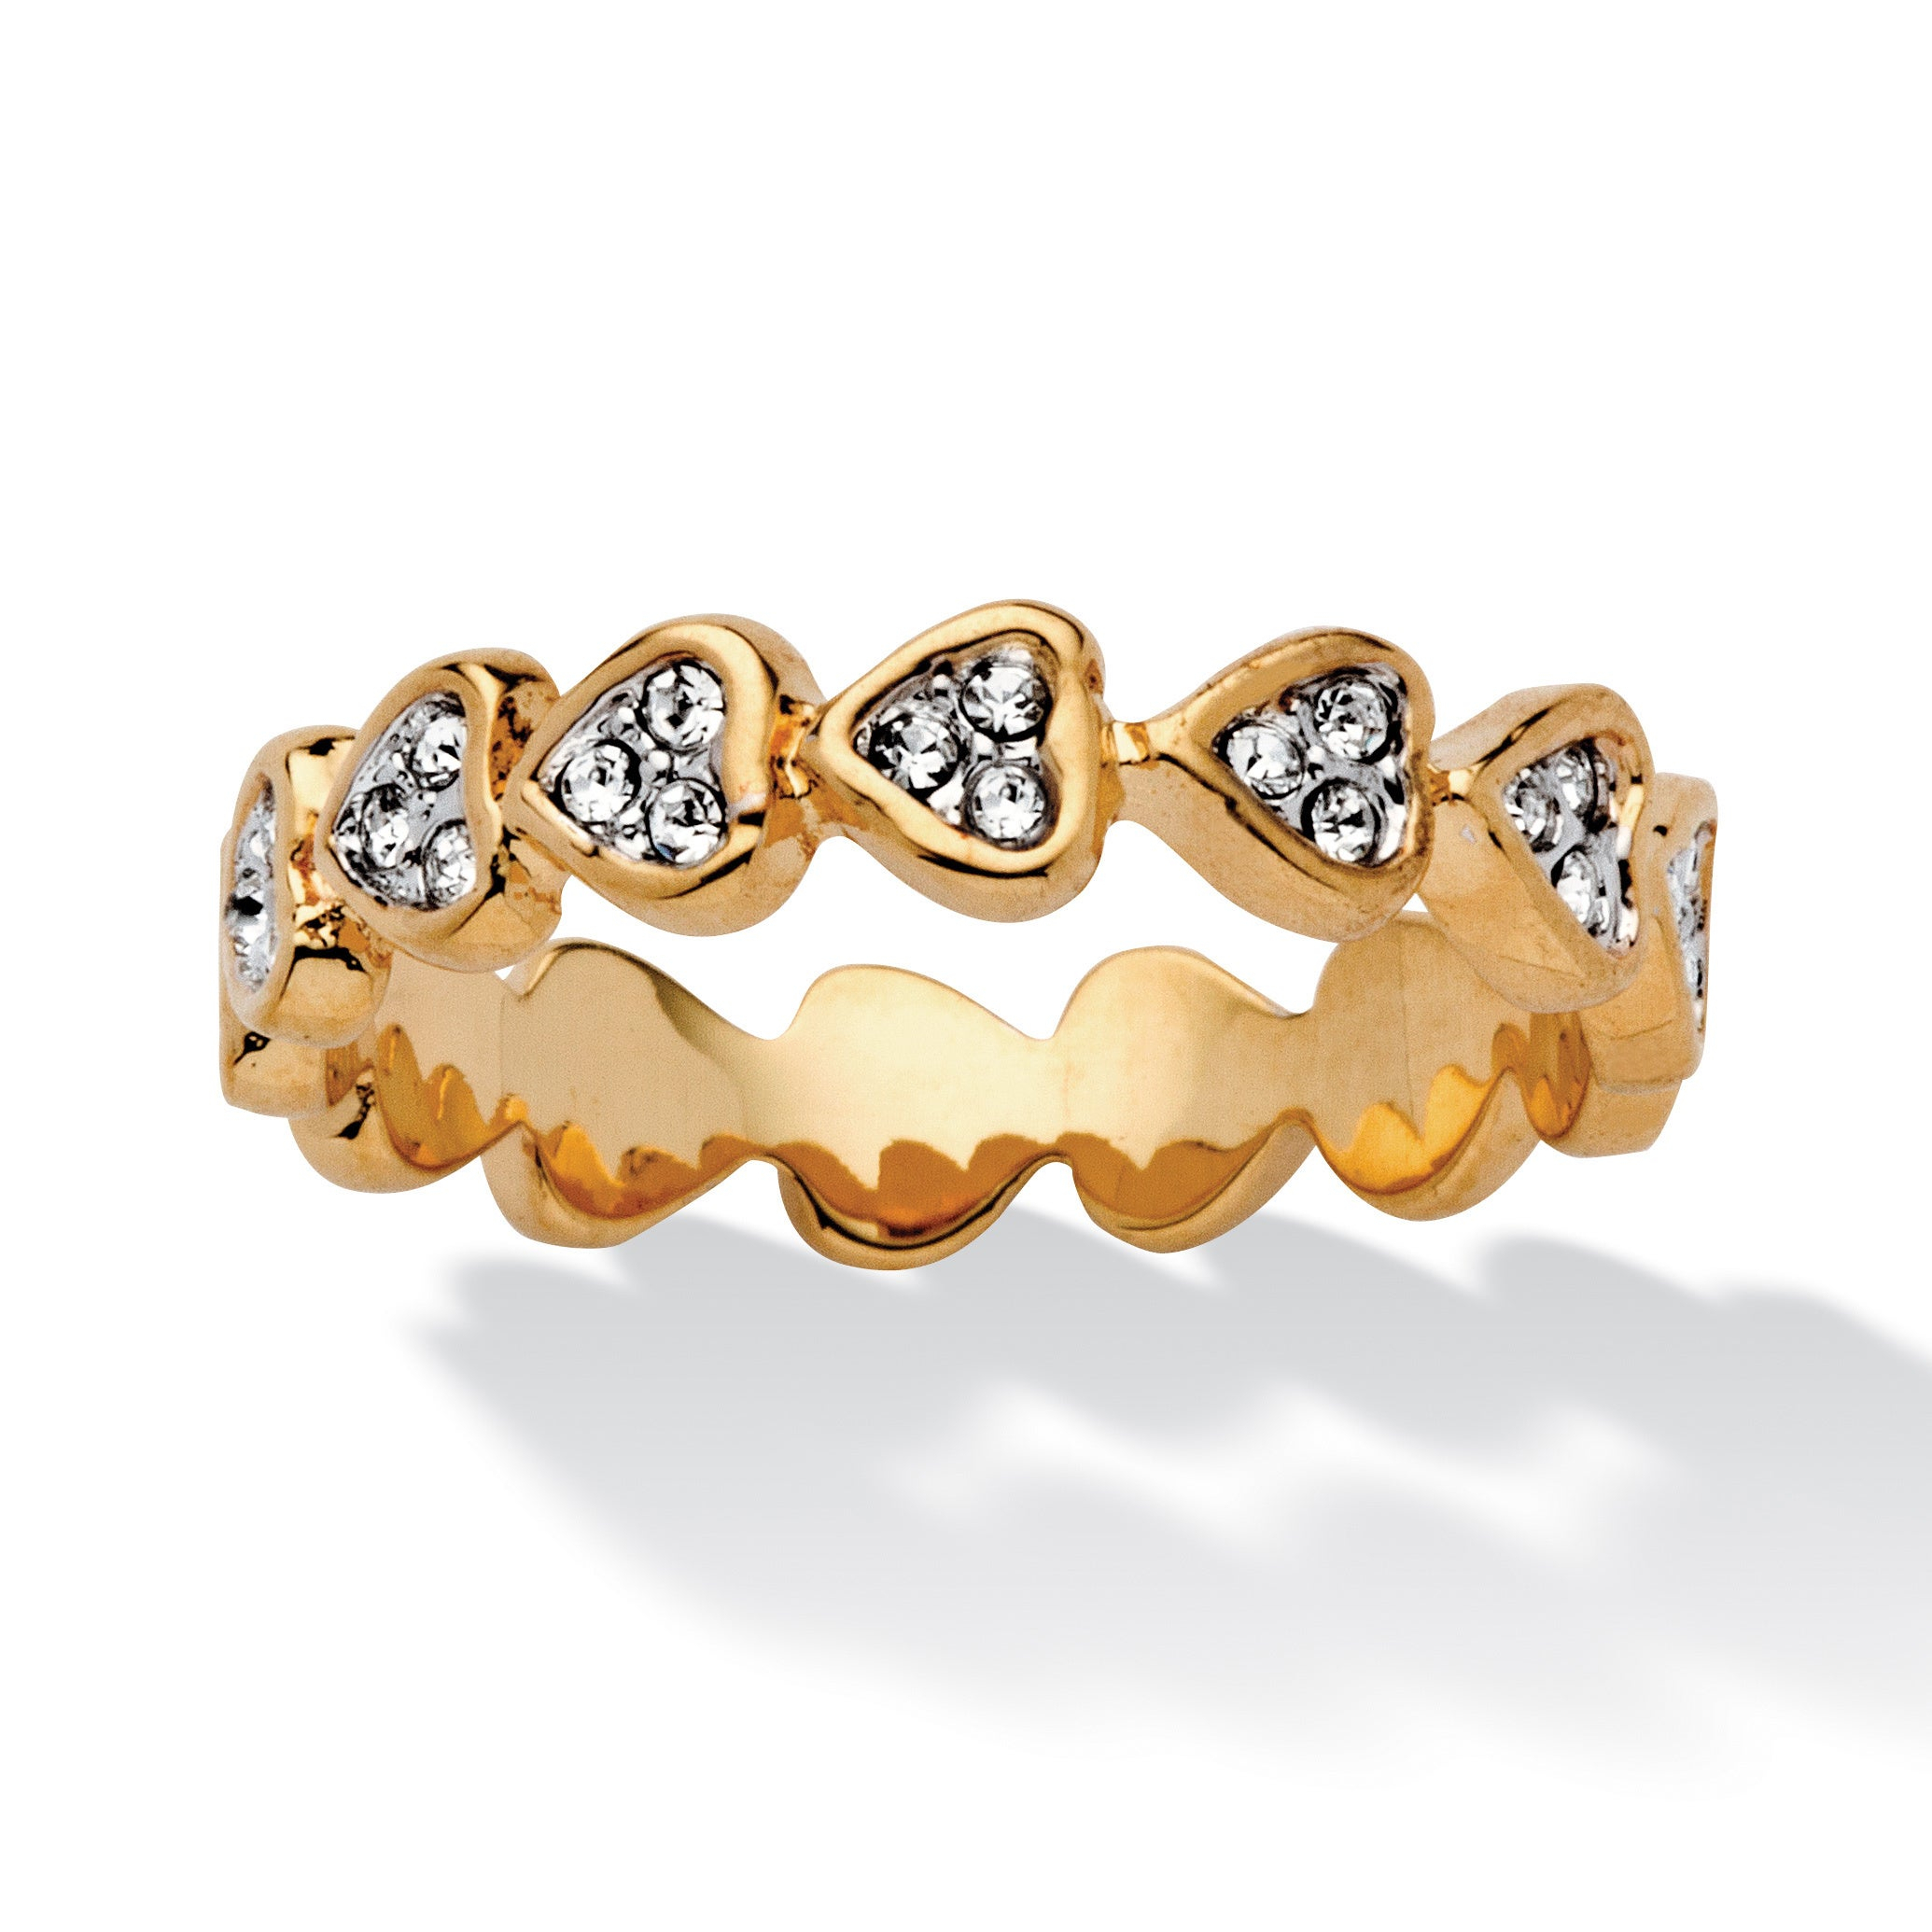 Round Crystal Yellow Gold Plated Band Of Hearts Ring Bold Fashion Pertaining To 2018 Band Of Hearts Rings (View 21 of 25)